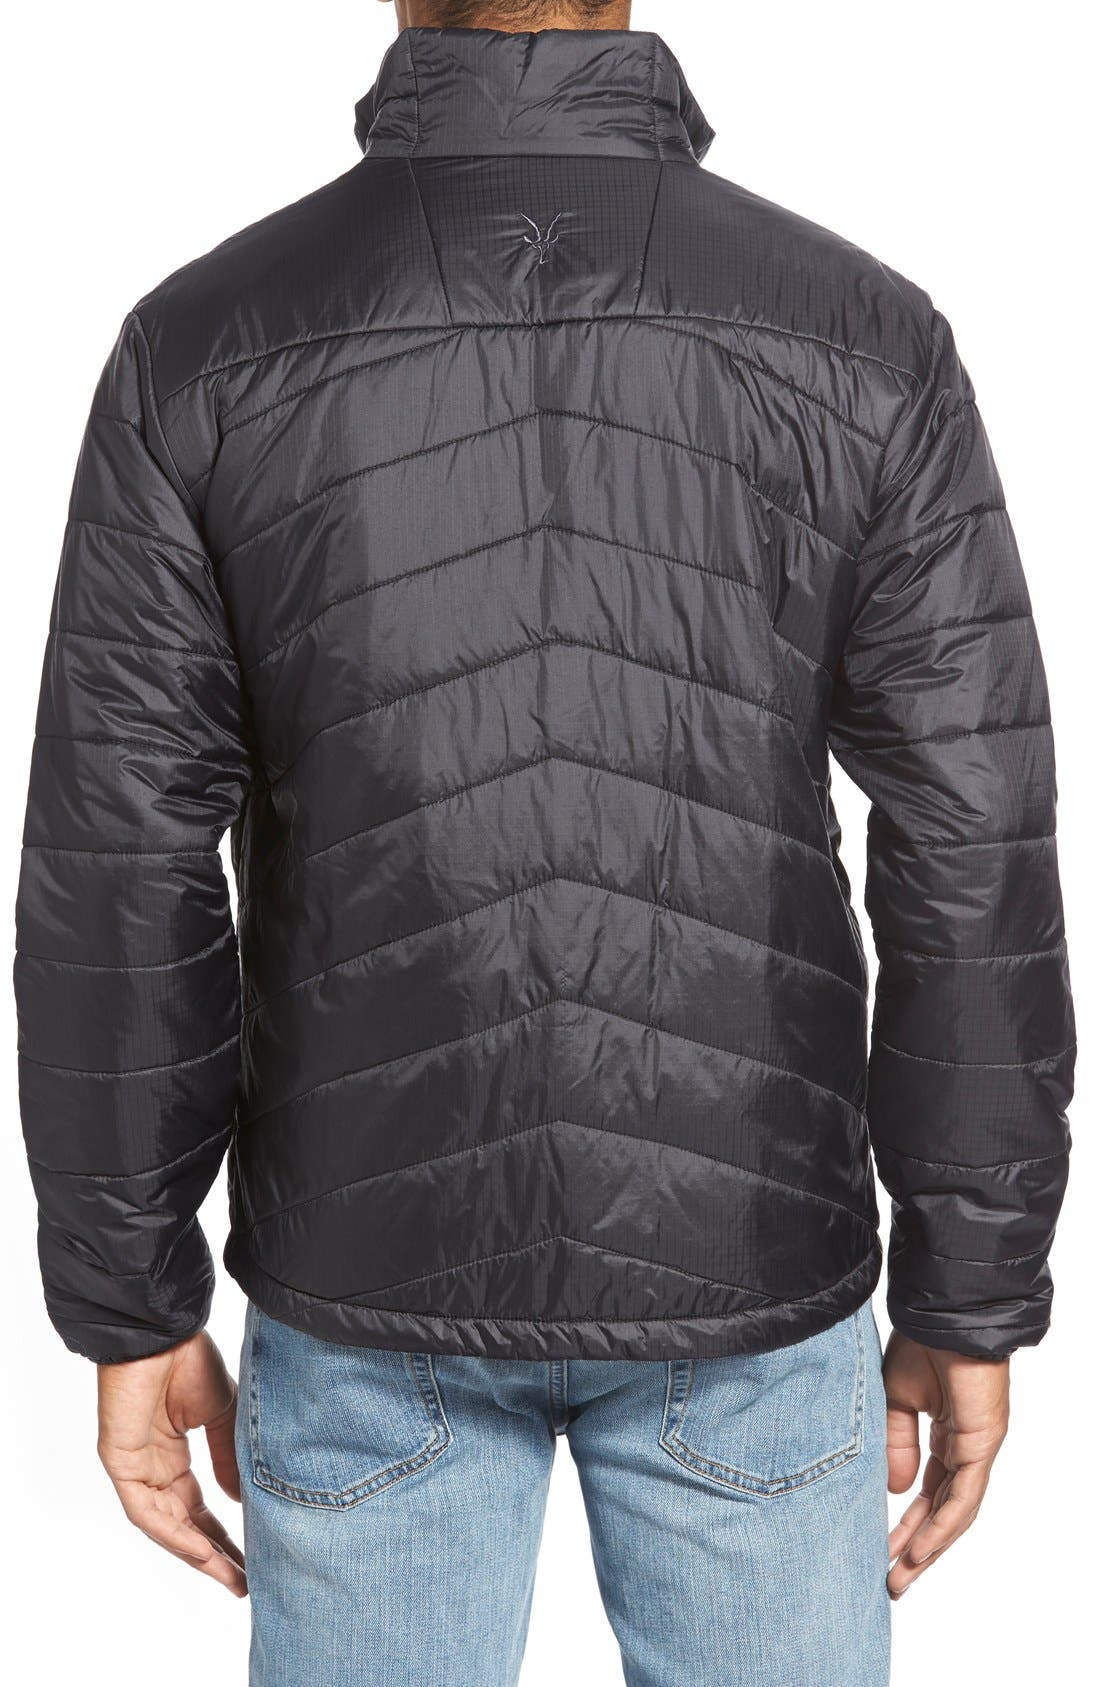 'Wool Aire' Water Resistant Jacket,                             Alternate thumbnail 2, color,                             001